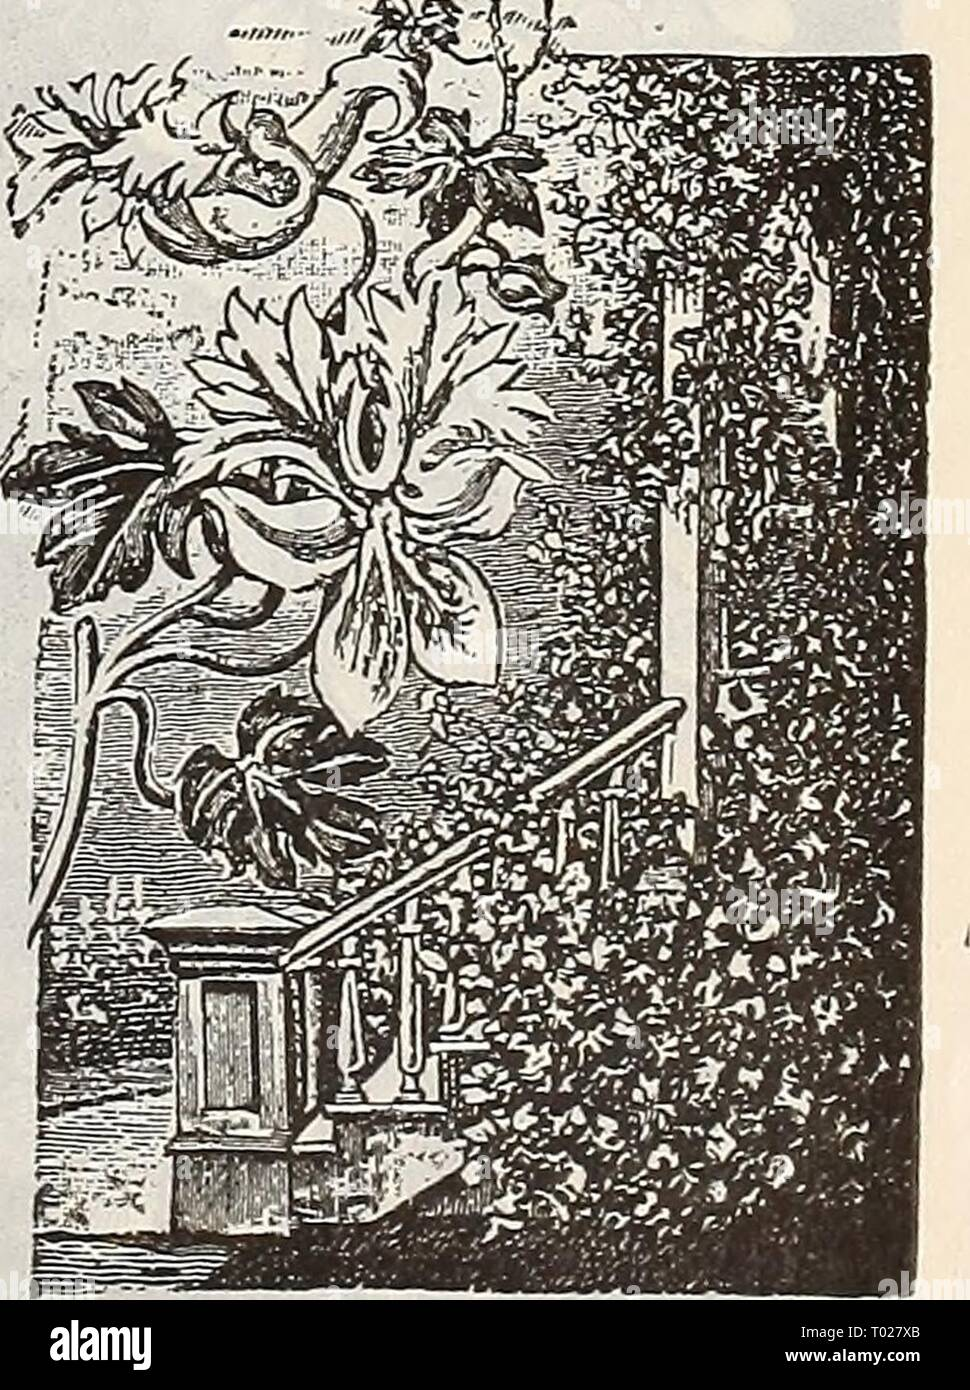 Dreer's garden calendar : 1900 . dreersgardencale1900henr Year: 1900  Calendula ' Mbtbor.' CACALIA. (Tassel Flower, or Flora's Paint Brush.) A neat annual, of easy culture, with tassel-shaped flowers; blooms from June to September; fine for borders. Golden-yellow and scarlet. 1^ feet. (See cut.) PER PKT. 1650 Cacalia, Mixed. Per oz. 50 cts 5 CANARY-BIRD FLOWER. (Tropaeoluni Canariense.) 1741 A beautiful climber, the charming little canary- colored blossoms bear- ing a fancied resem- blance to a bird with its wings half expanded. (See cut.) 5    Canary-Bird Flower. - Stock Image